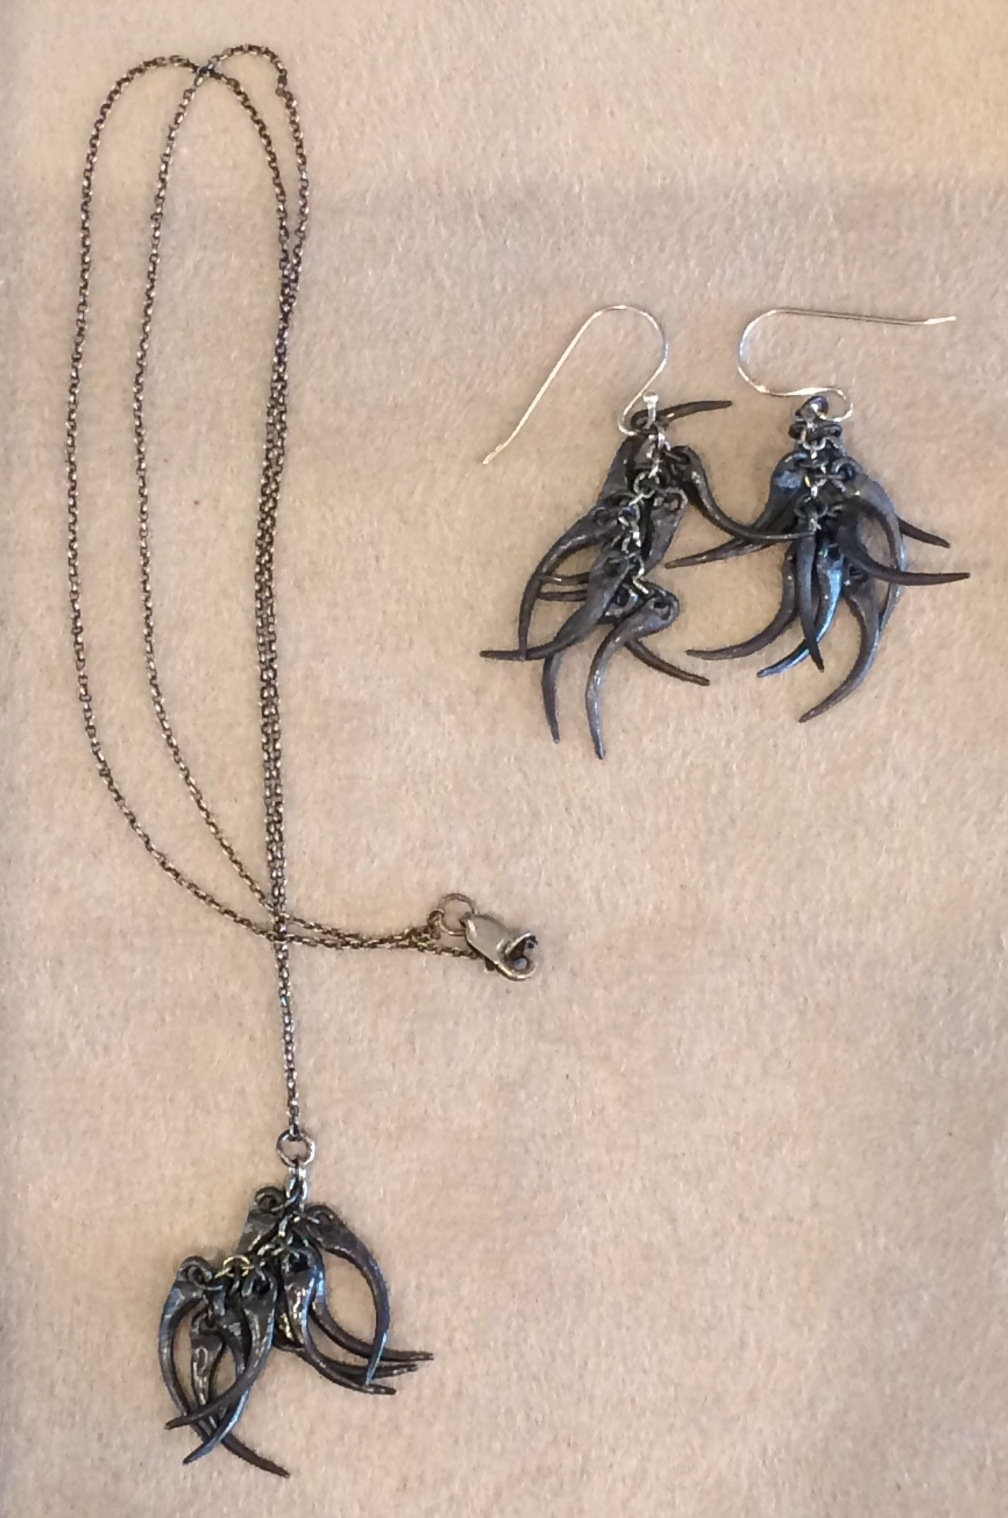 Lauren Wolf Jewelry: Snake Fang Necklace and Snake Fang Earrings